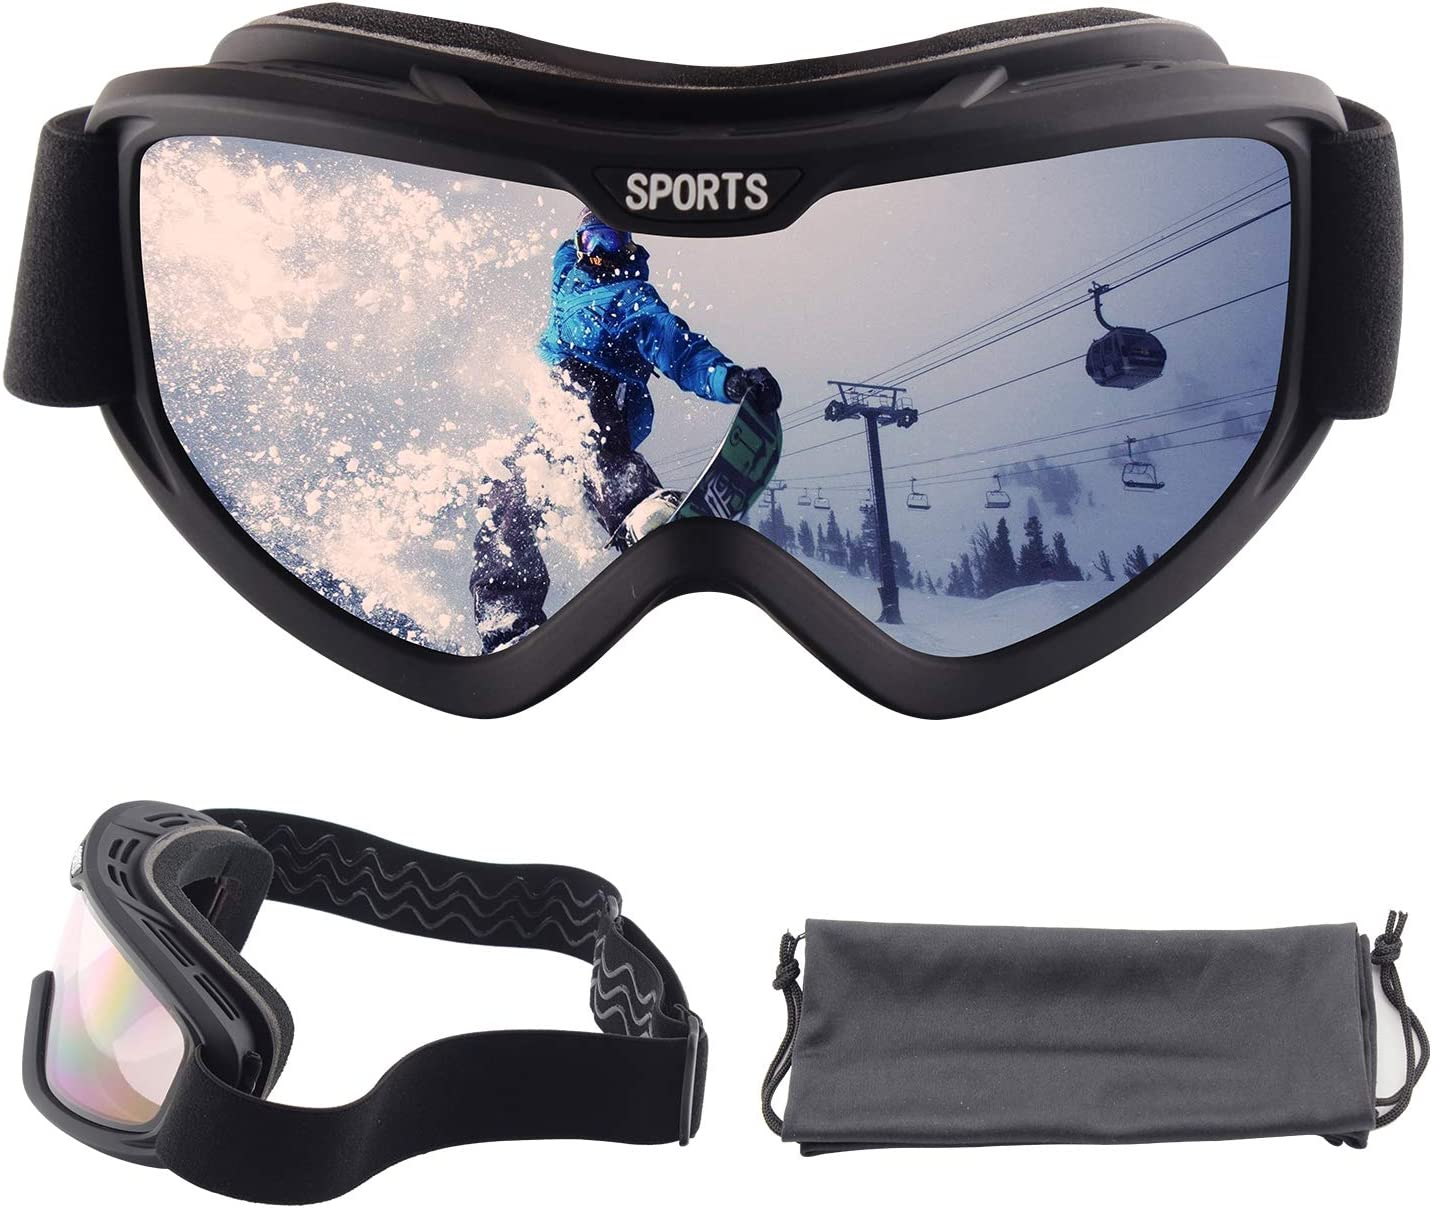 OULIQI Outdoor Anti-Fog Ski Goggles for Men Women Adult,Snowboard Goggles for Men Adjustable UV Protective Safety Outdoor Glasses for Cycling, Climbing